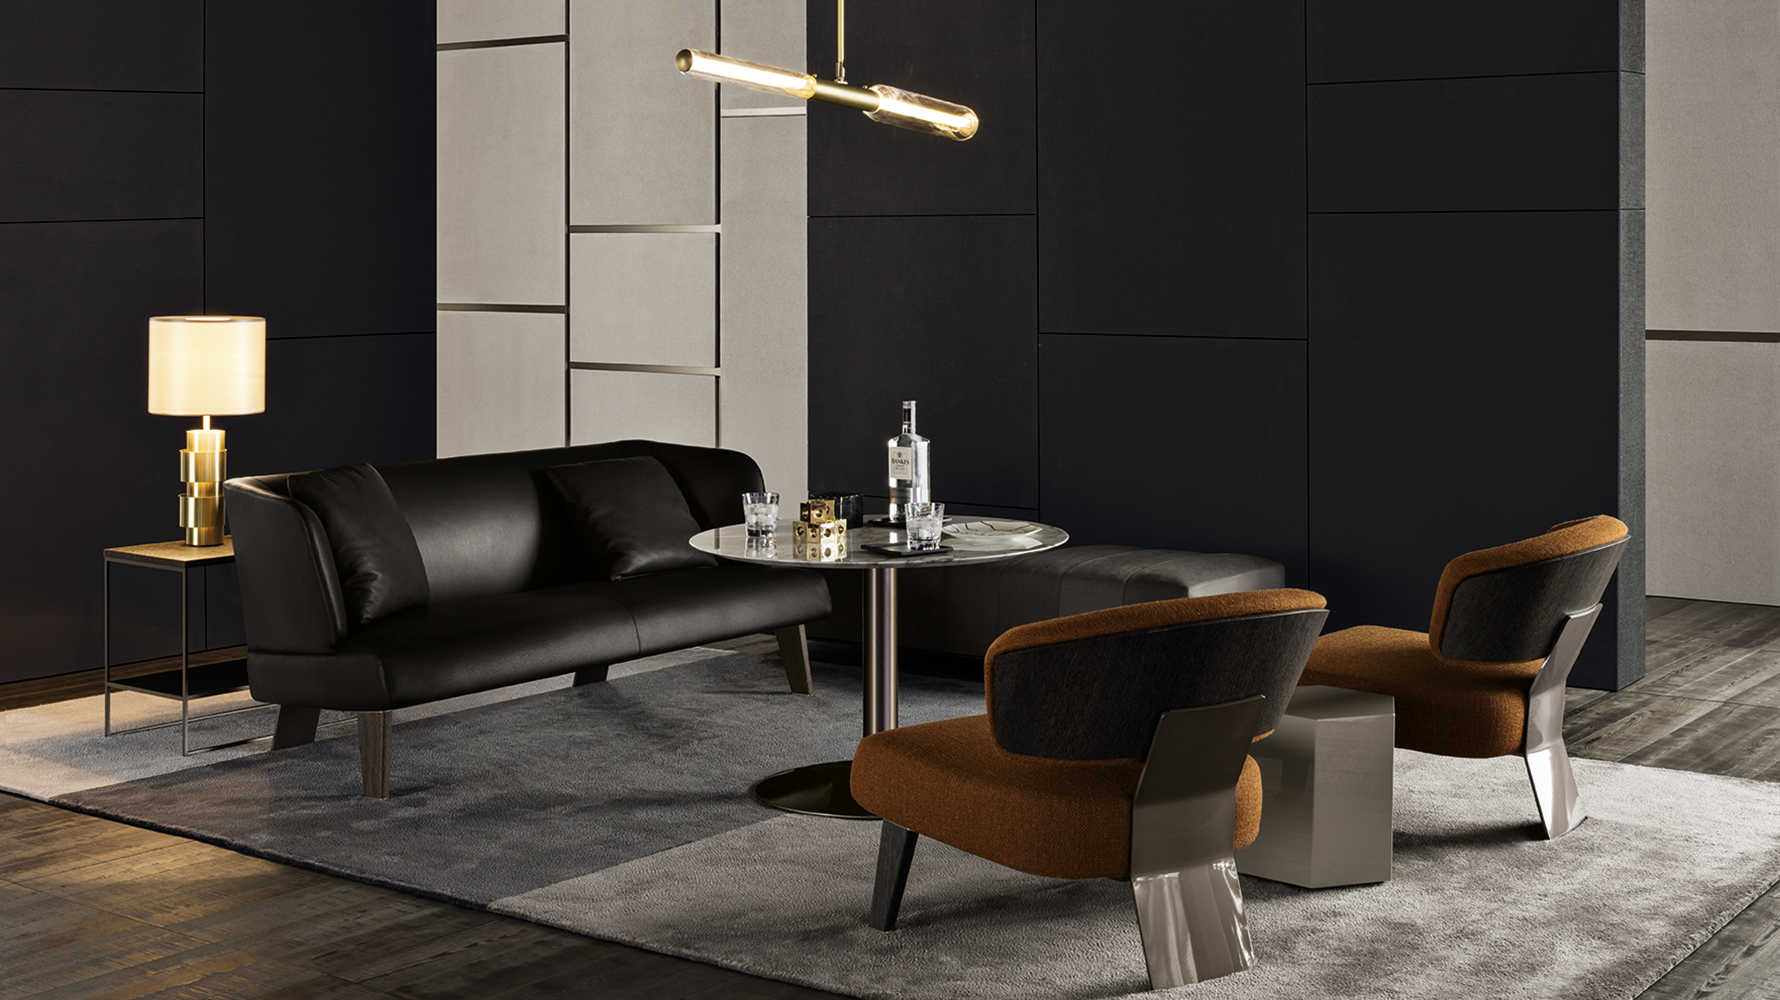 creed divano lounge designed by rodolfo dordini minotti orange skin. Black Bedroom Furniture Sets. Home Design Ideas